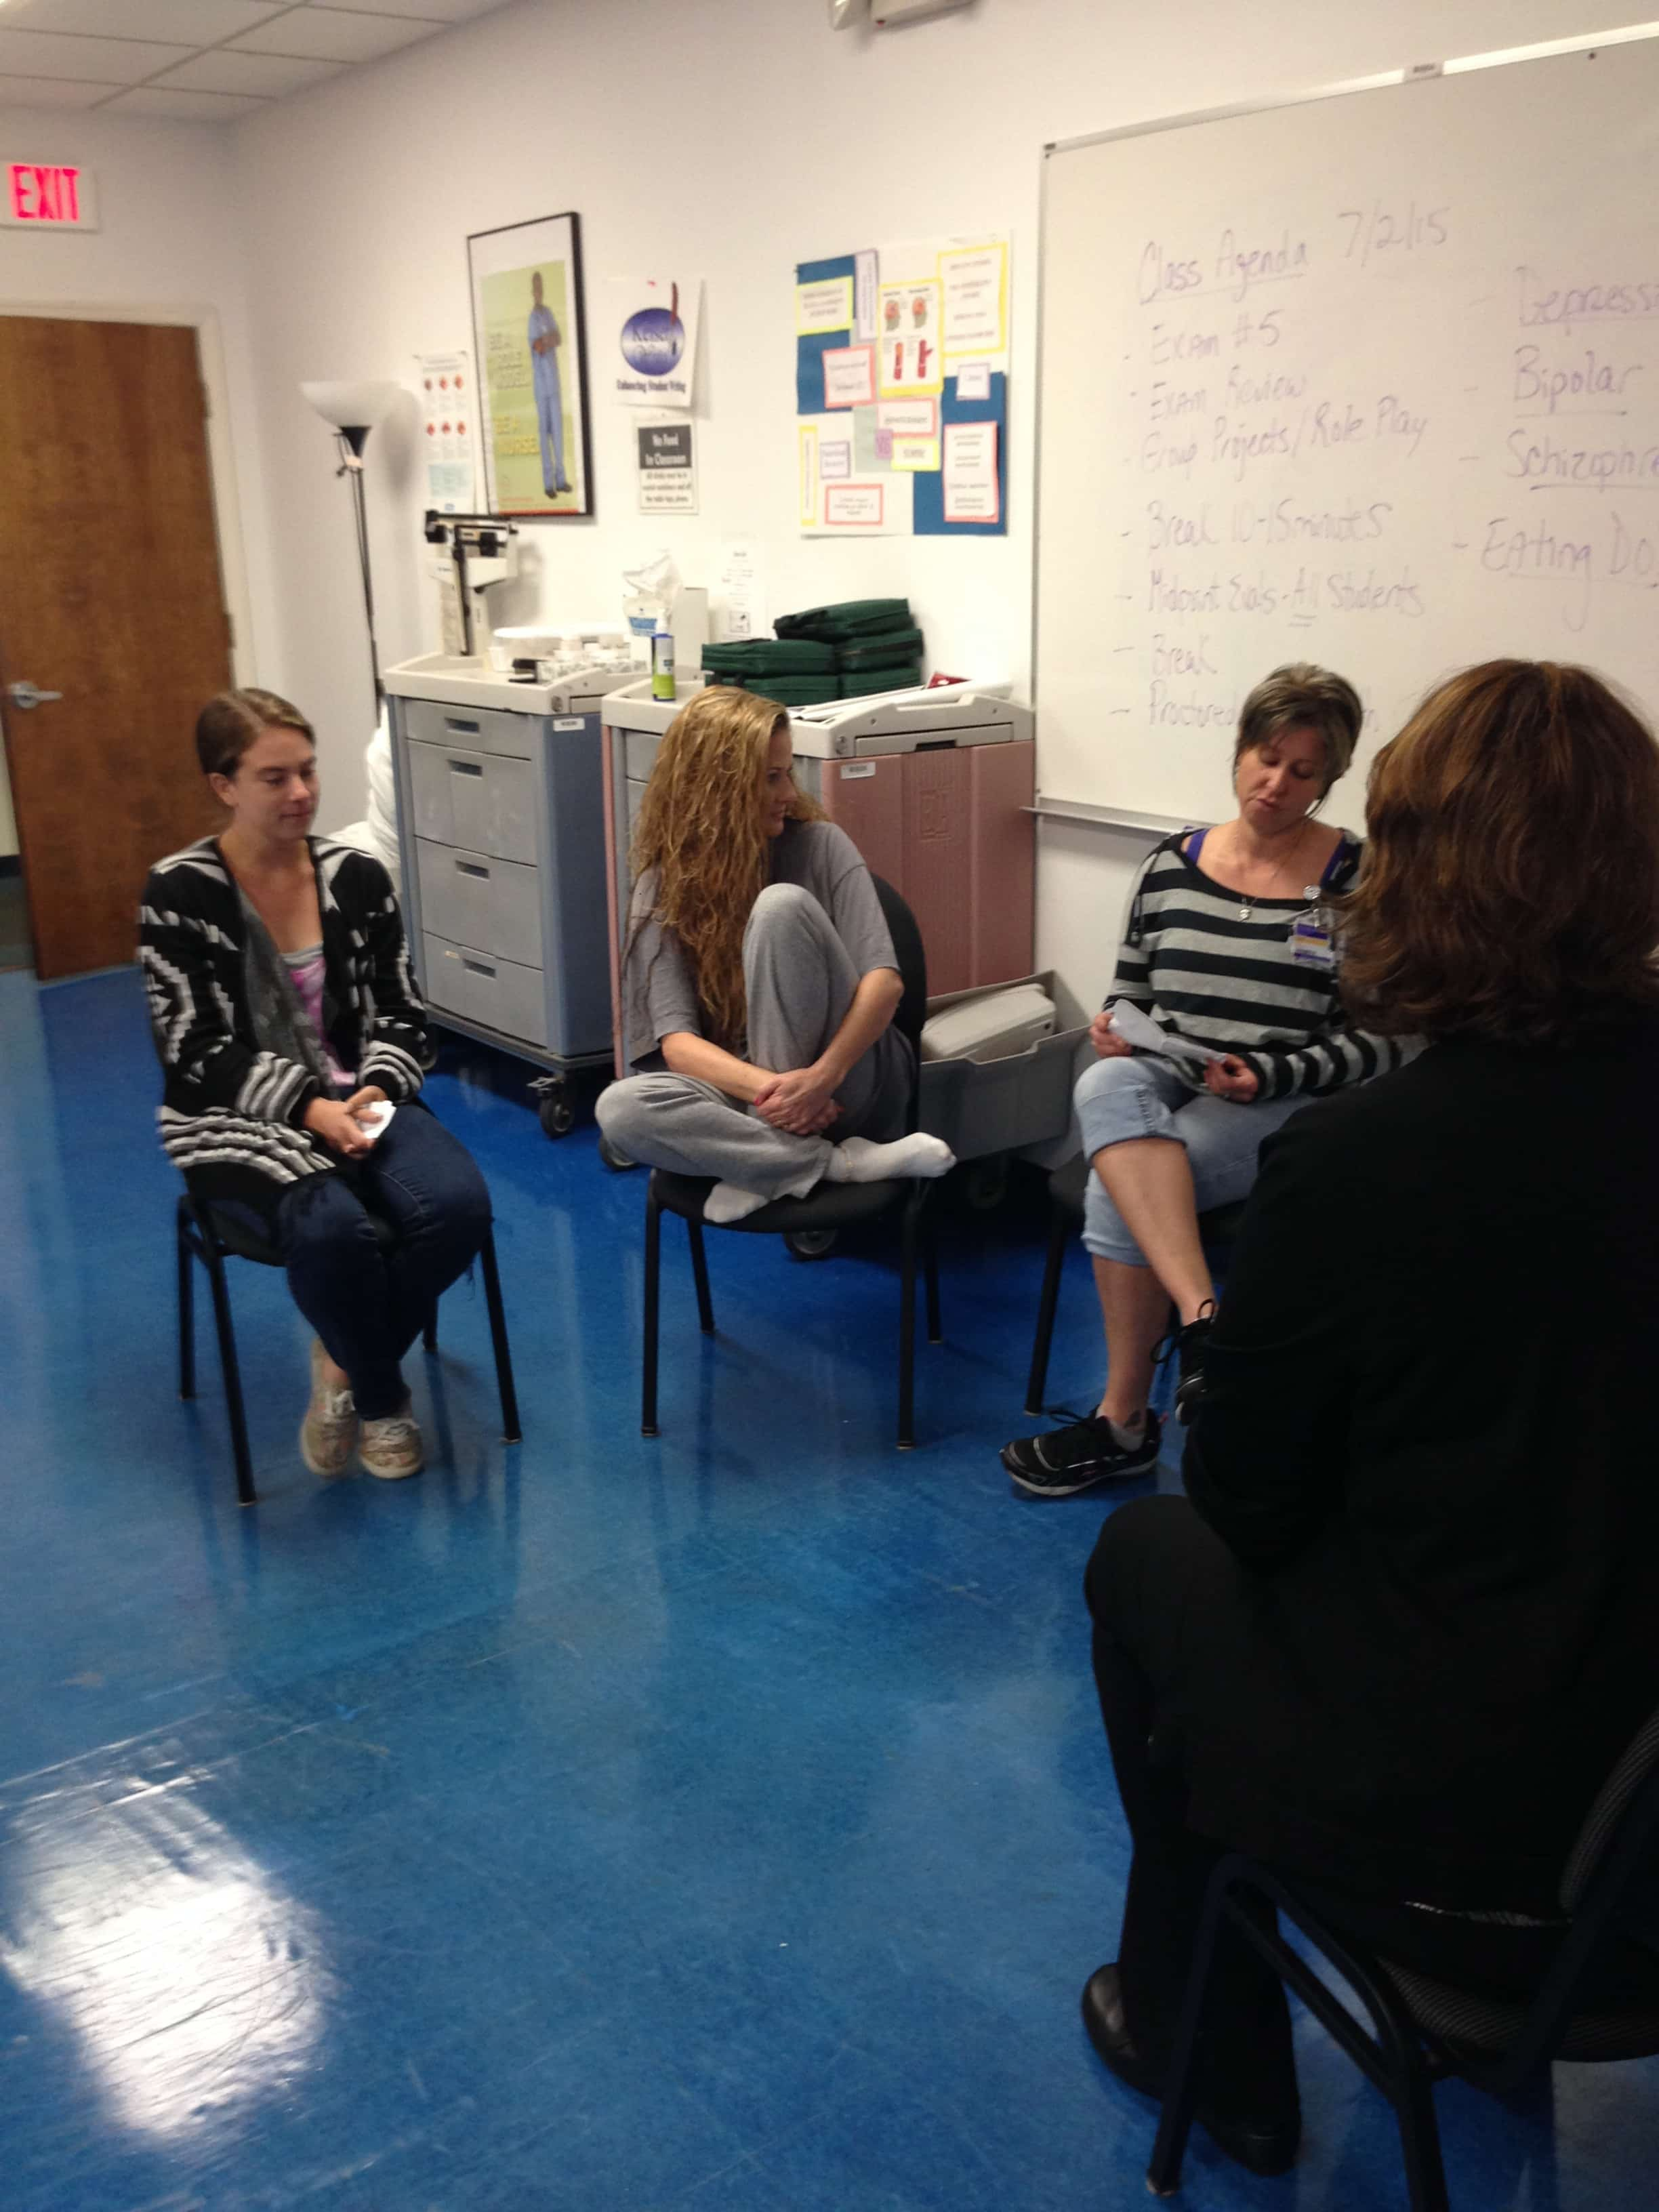 Melbourne Nursing Students Work on Scenarios for Their Mental Health Projects